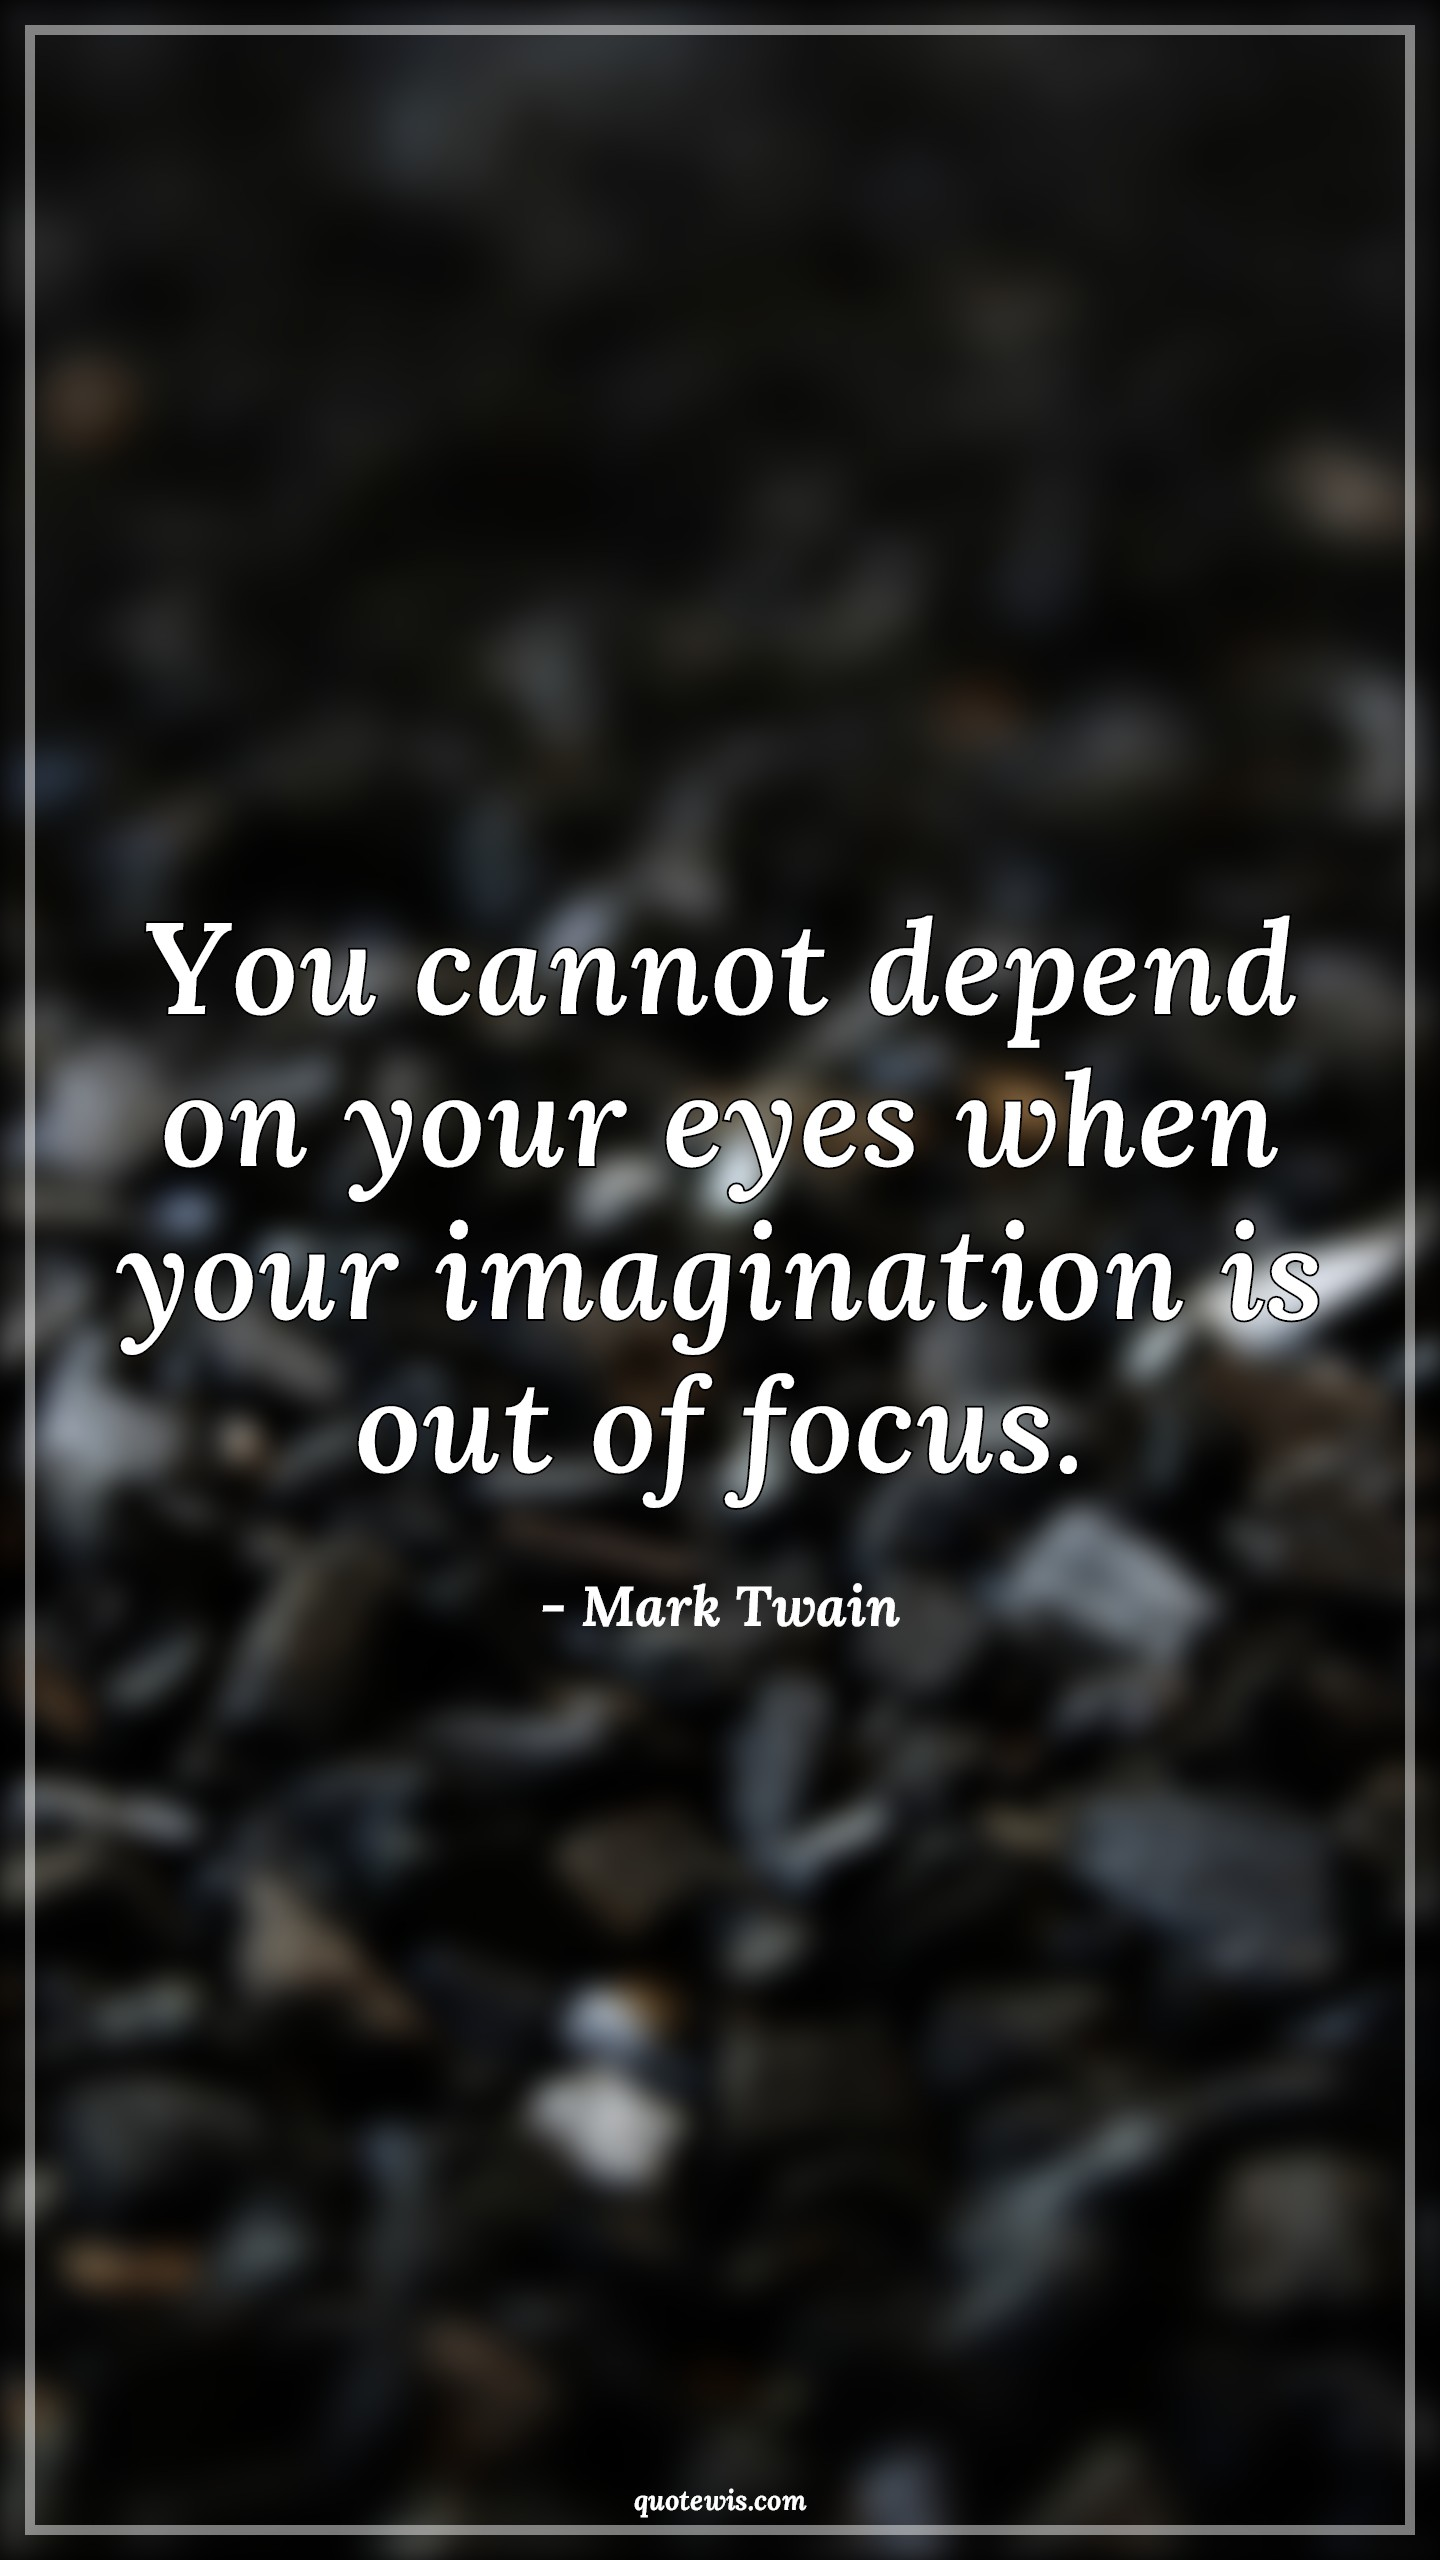 You cannot depend on your eyes when your imagination is out of focus.